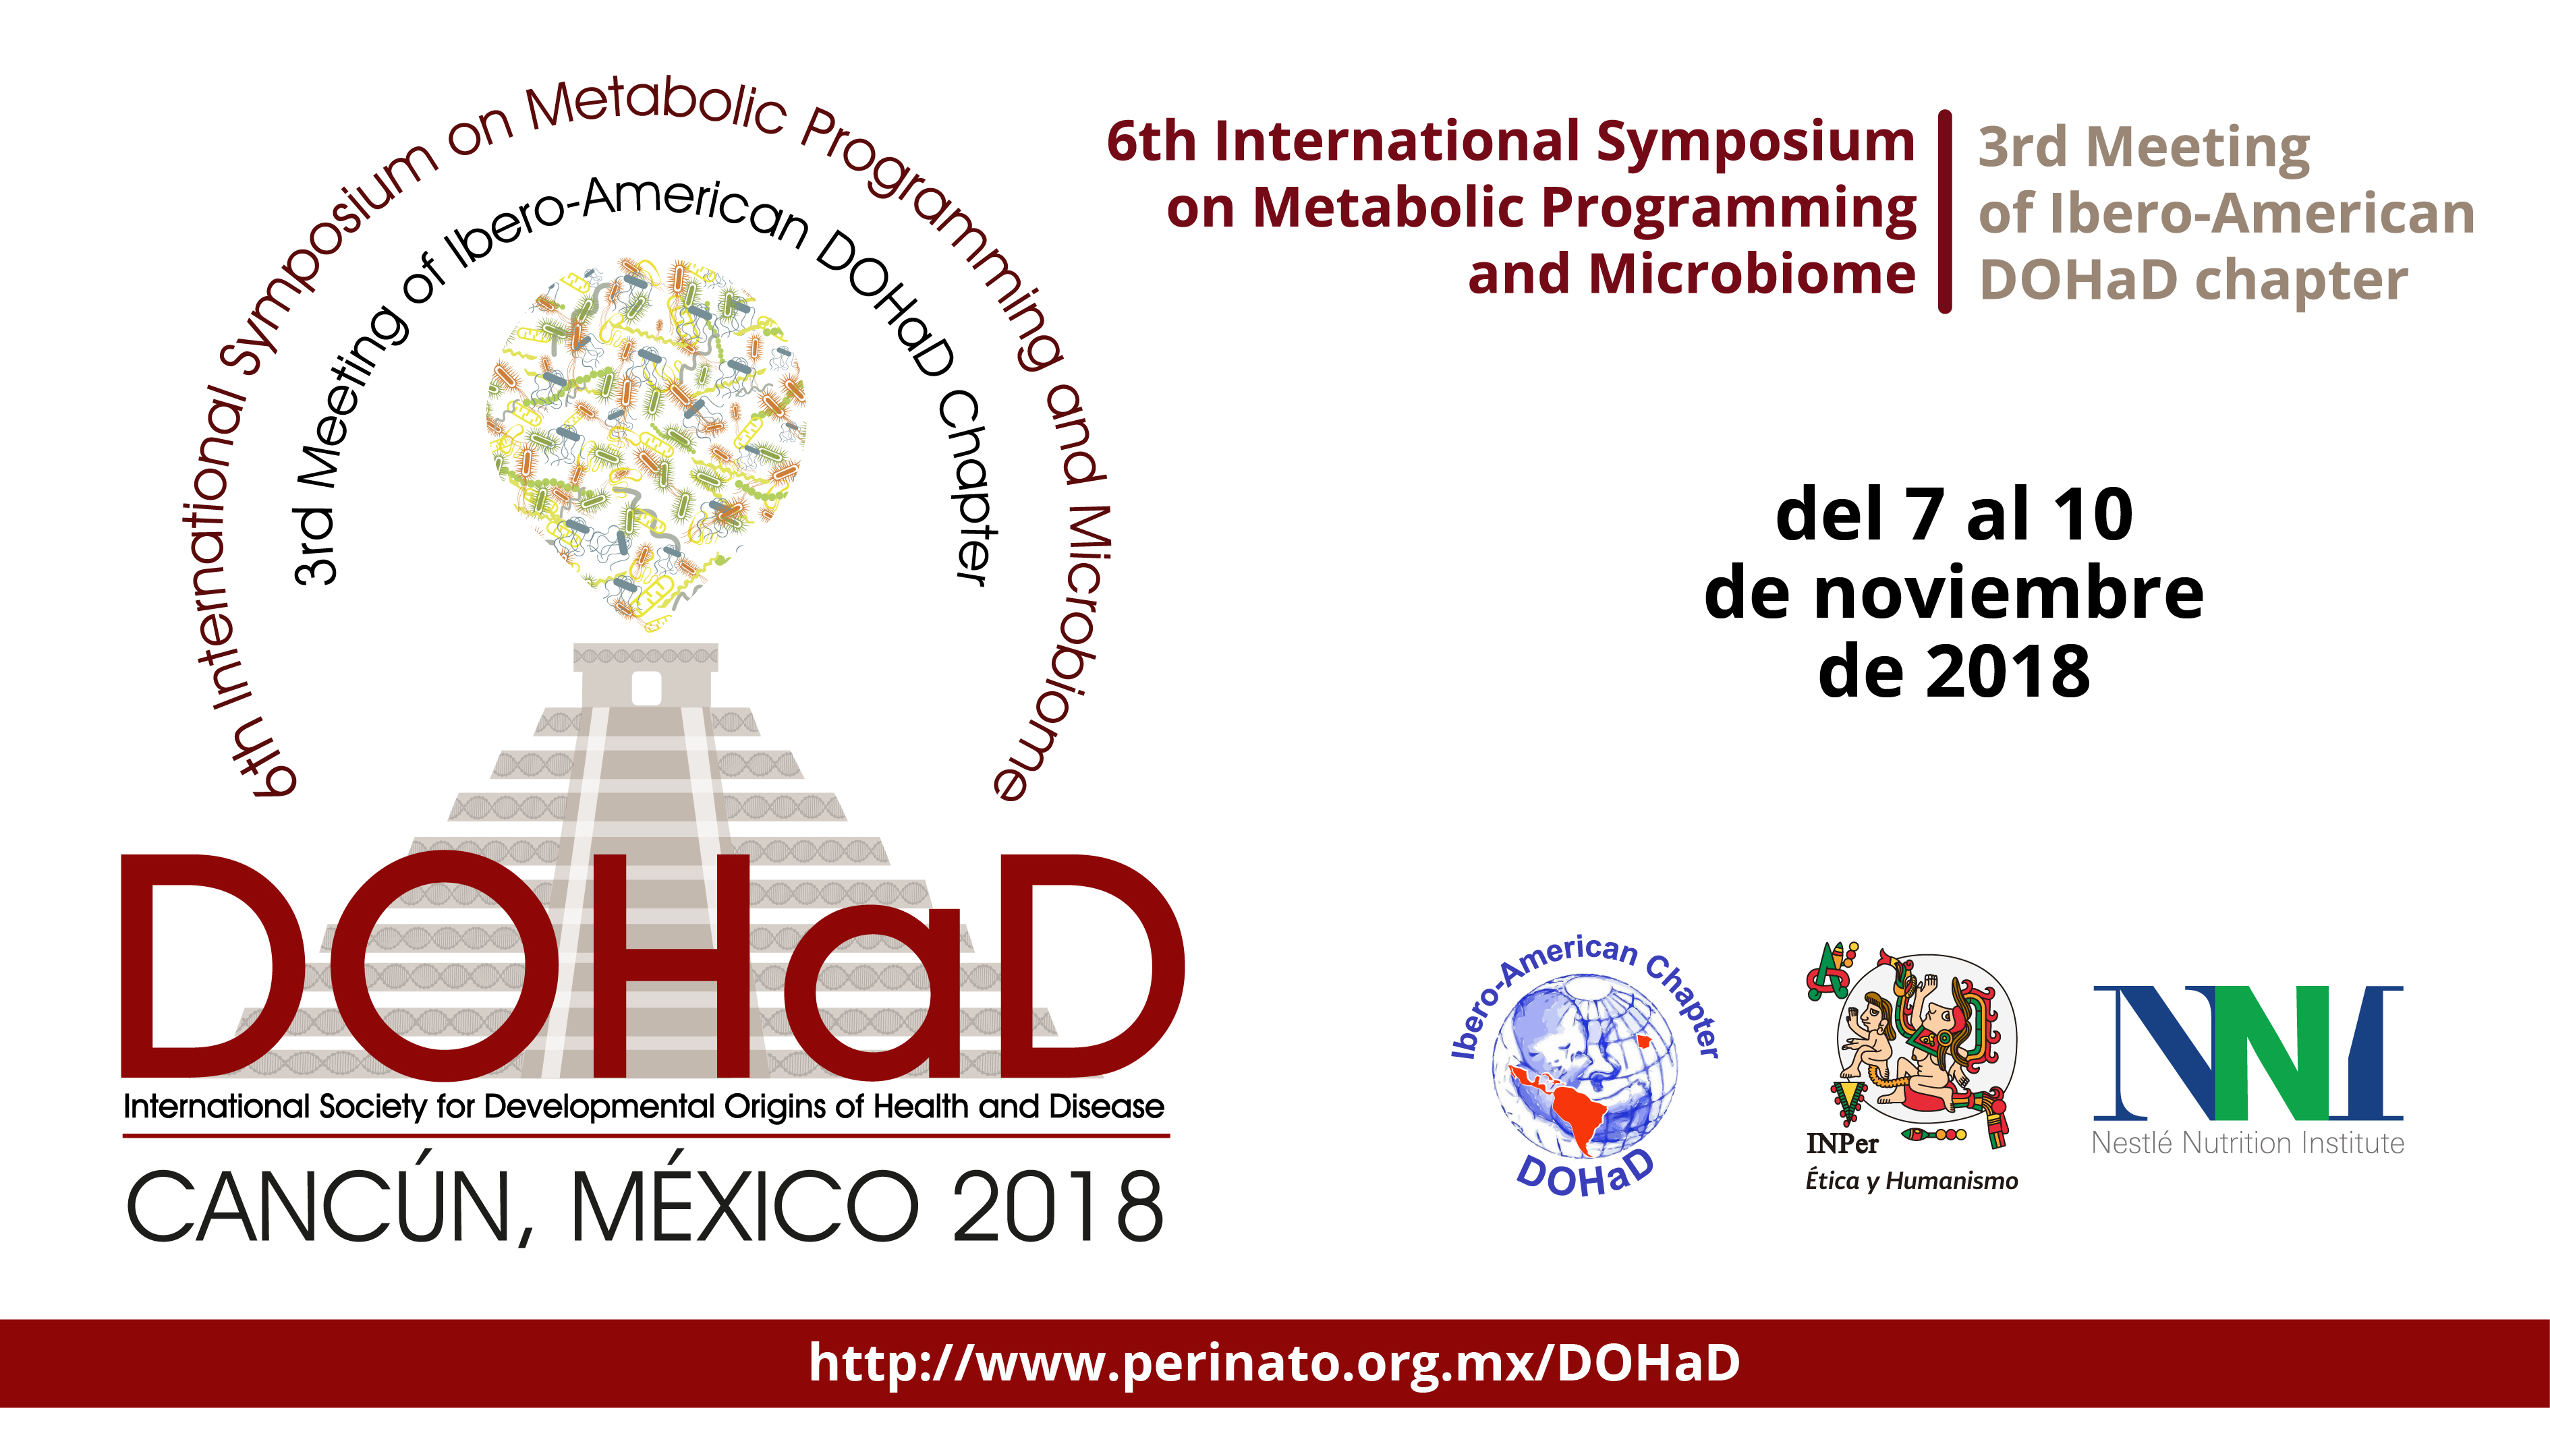 6th International Symposium